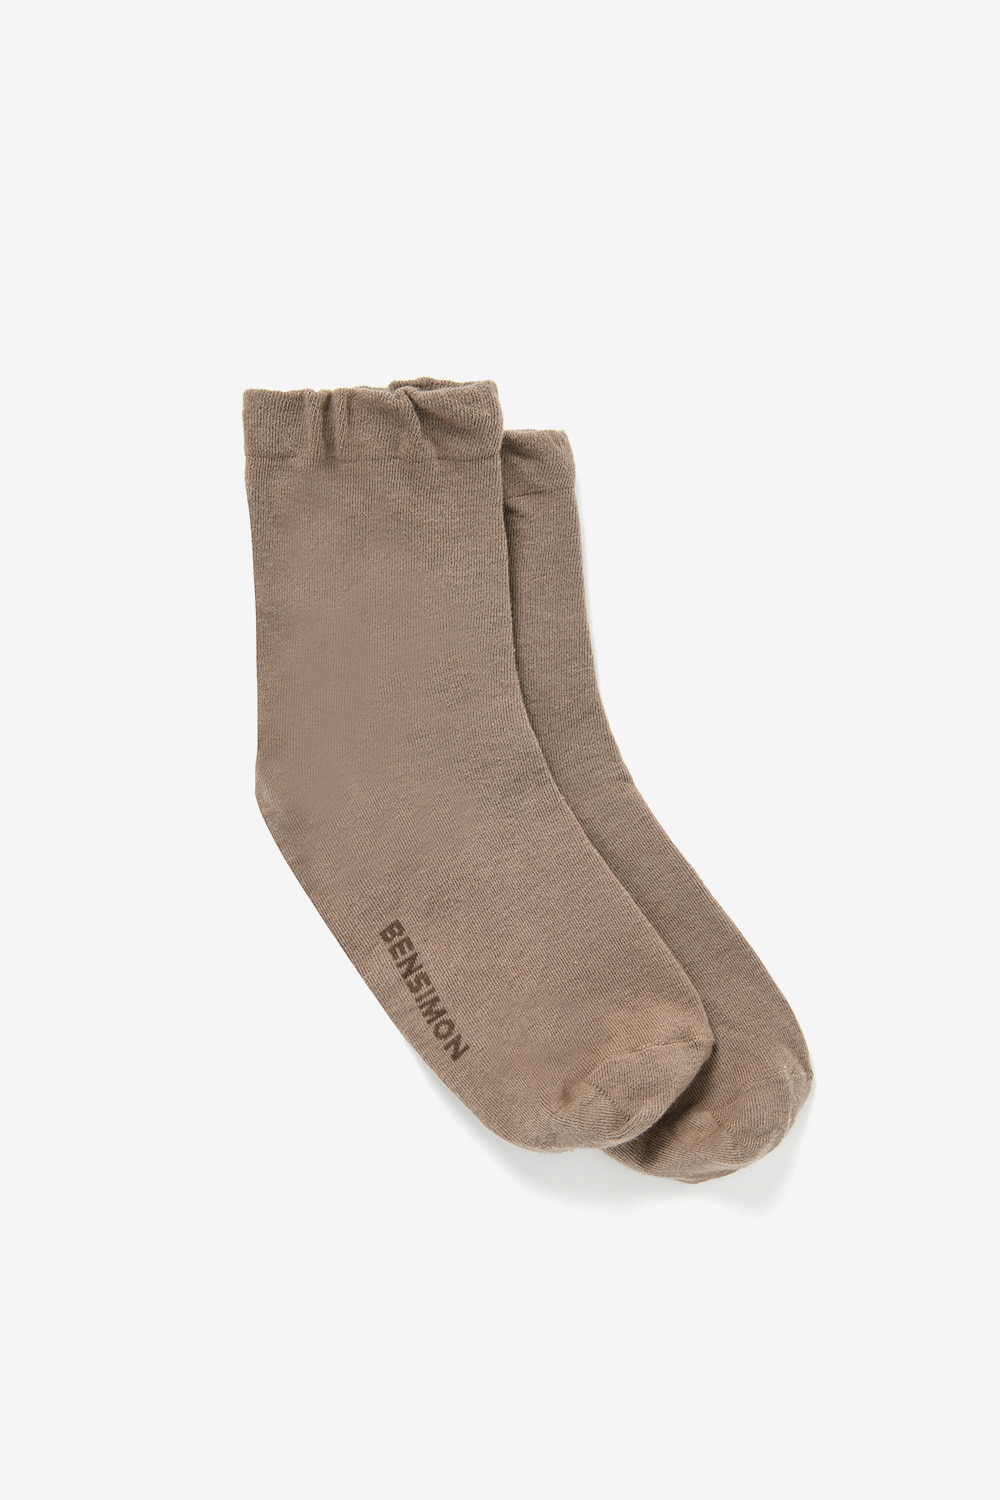 Basic Socks_Eggshell BS0SSS503EG00F